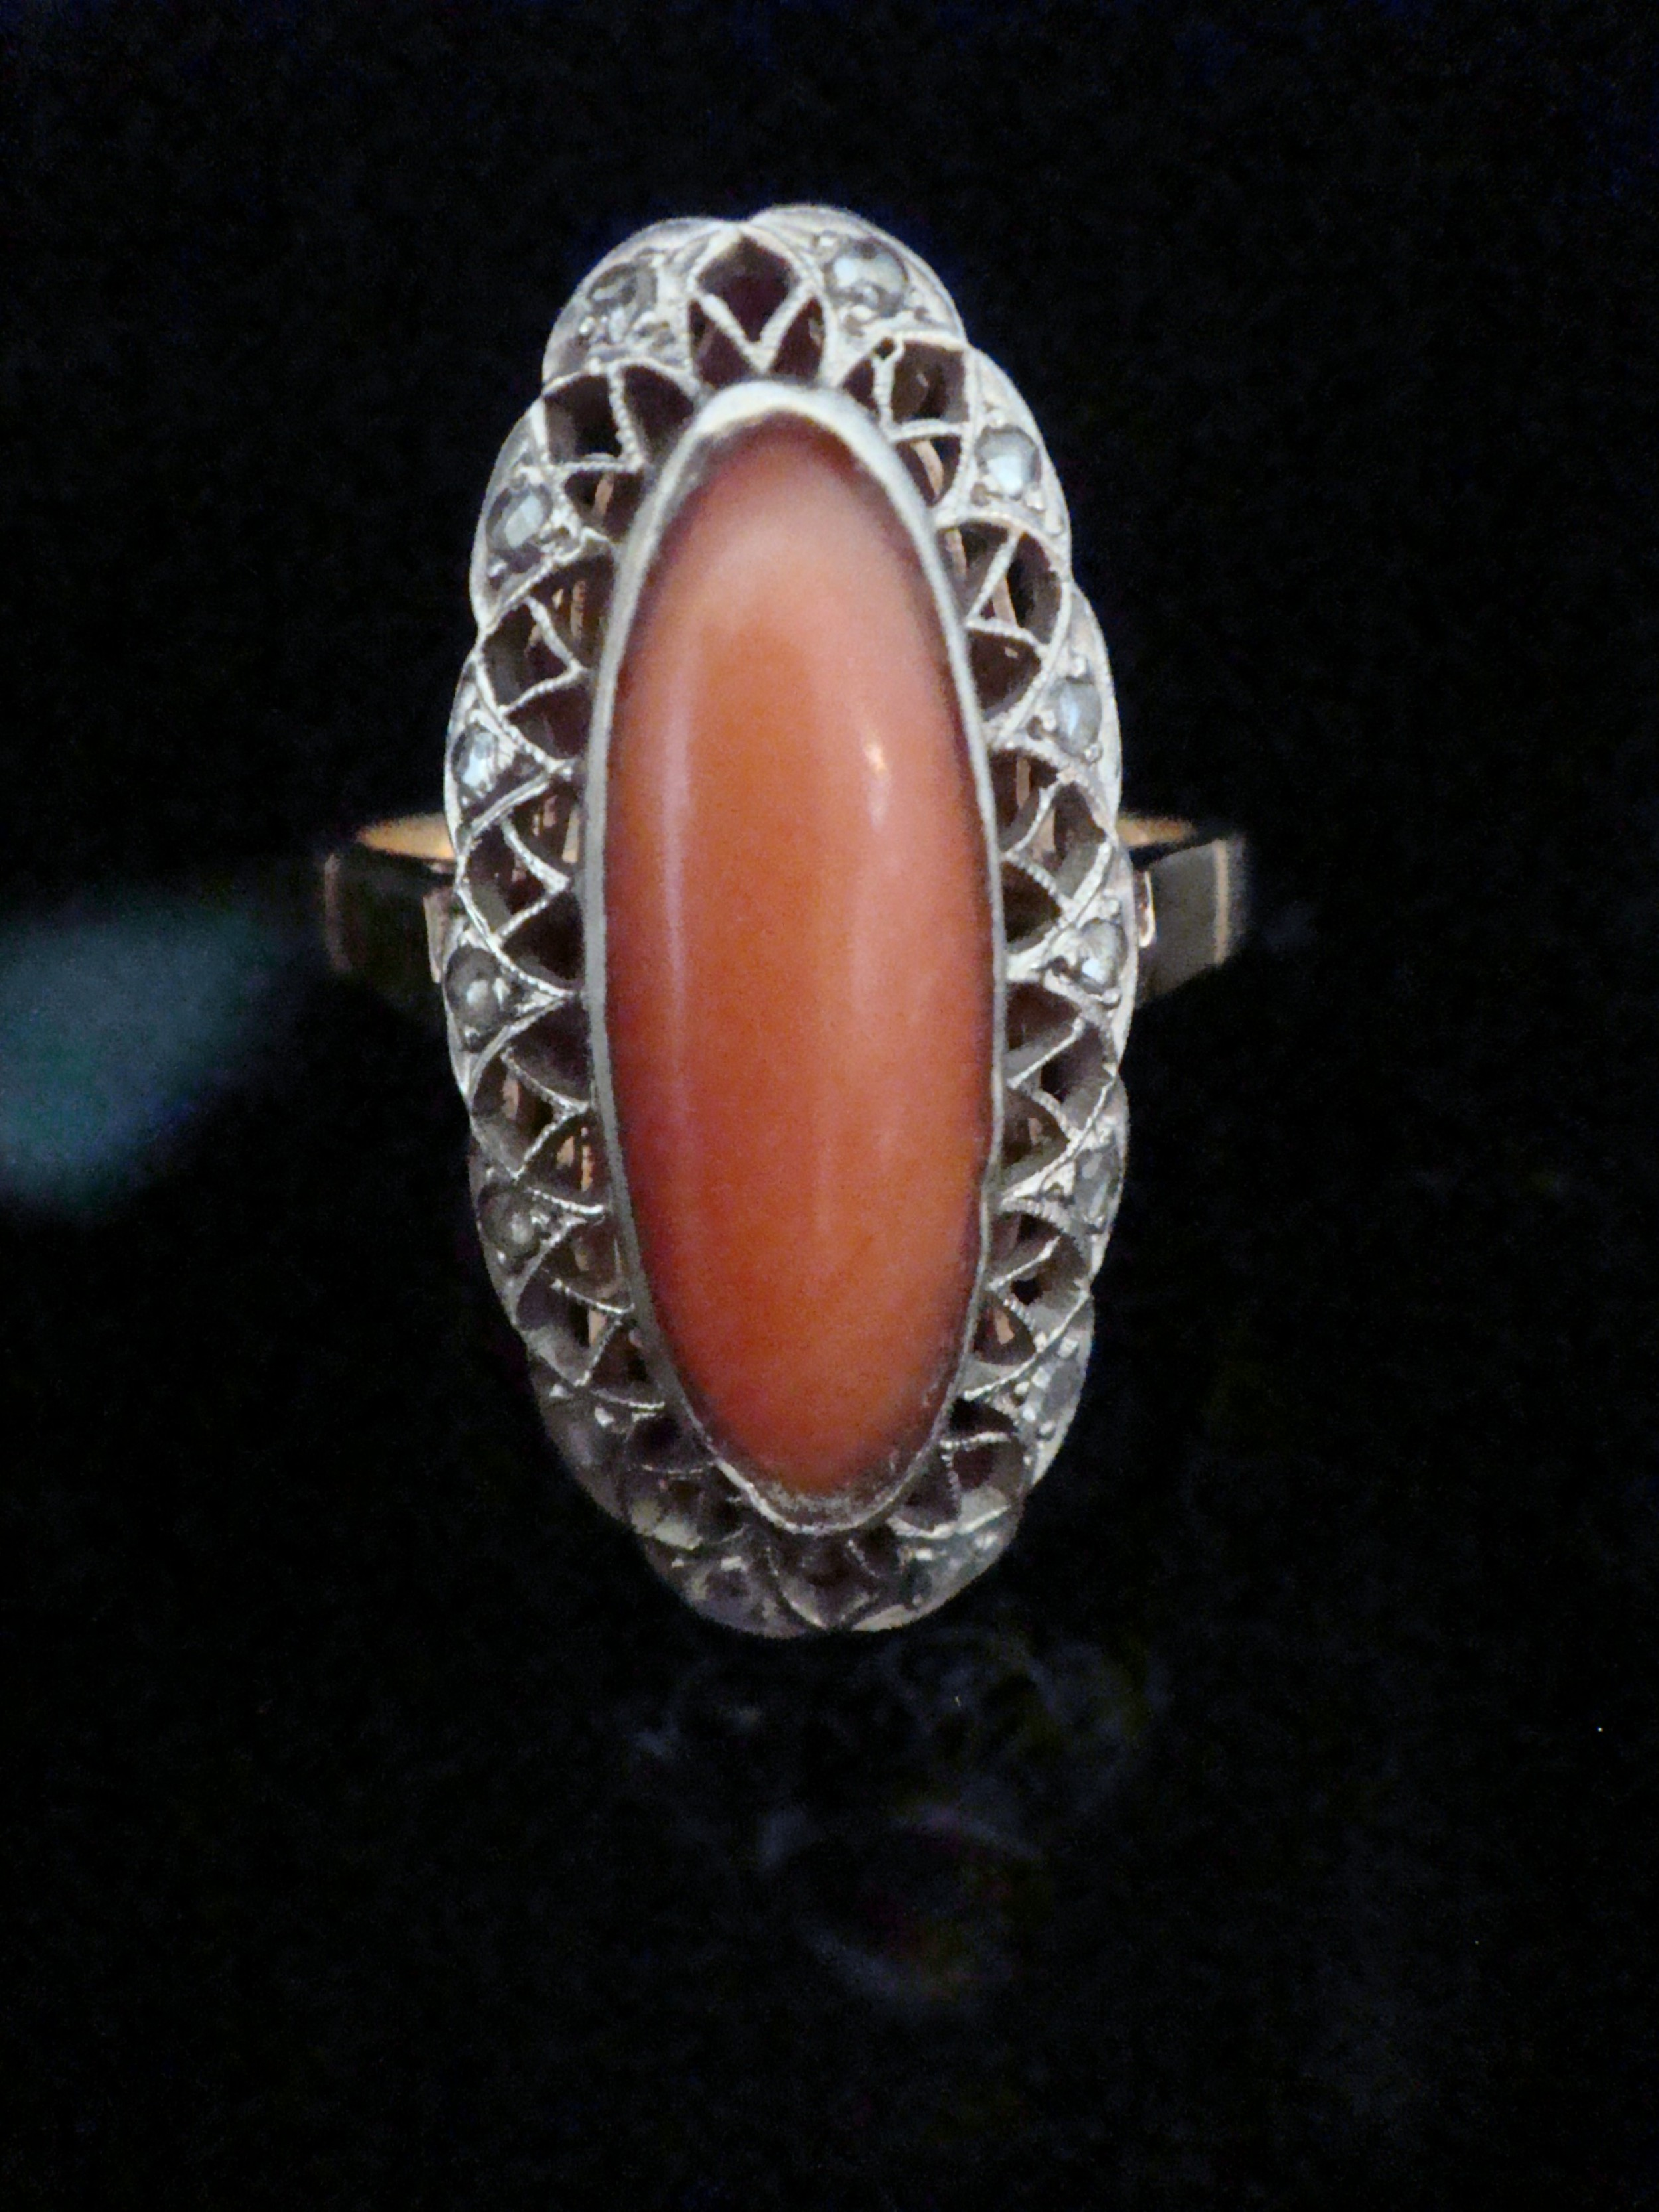 edwardian natural coral and diamond ring set in 18ct yellow gold